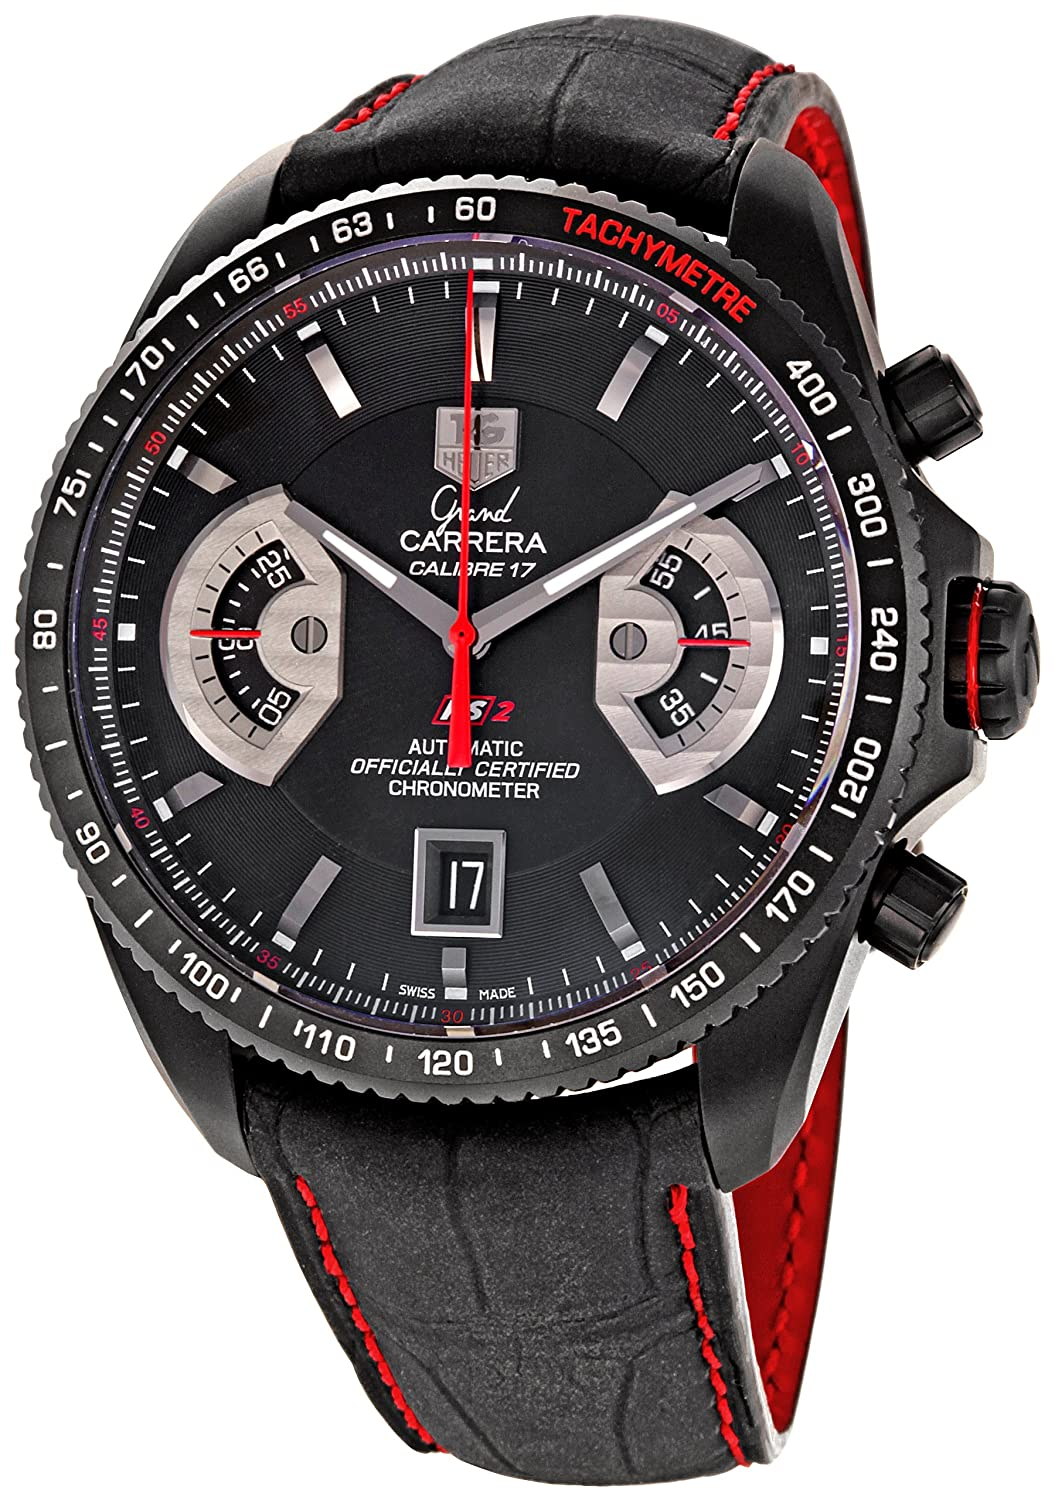 lancashire carerra carrera chronograph watches of heuer